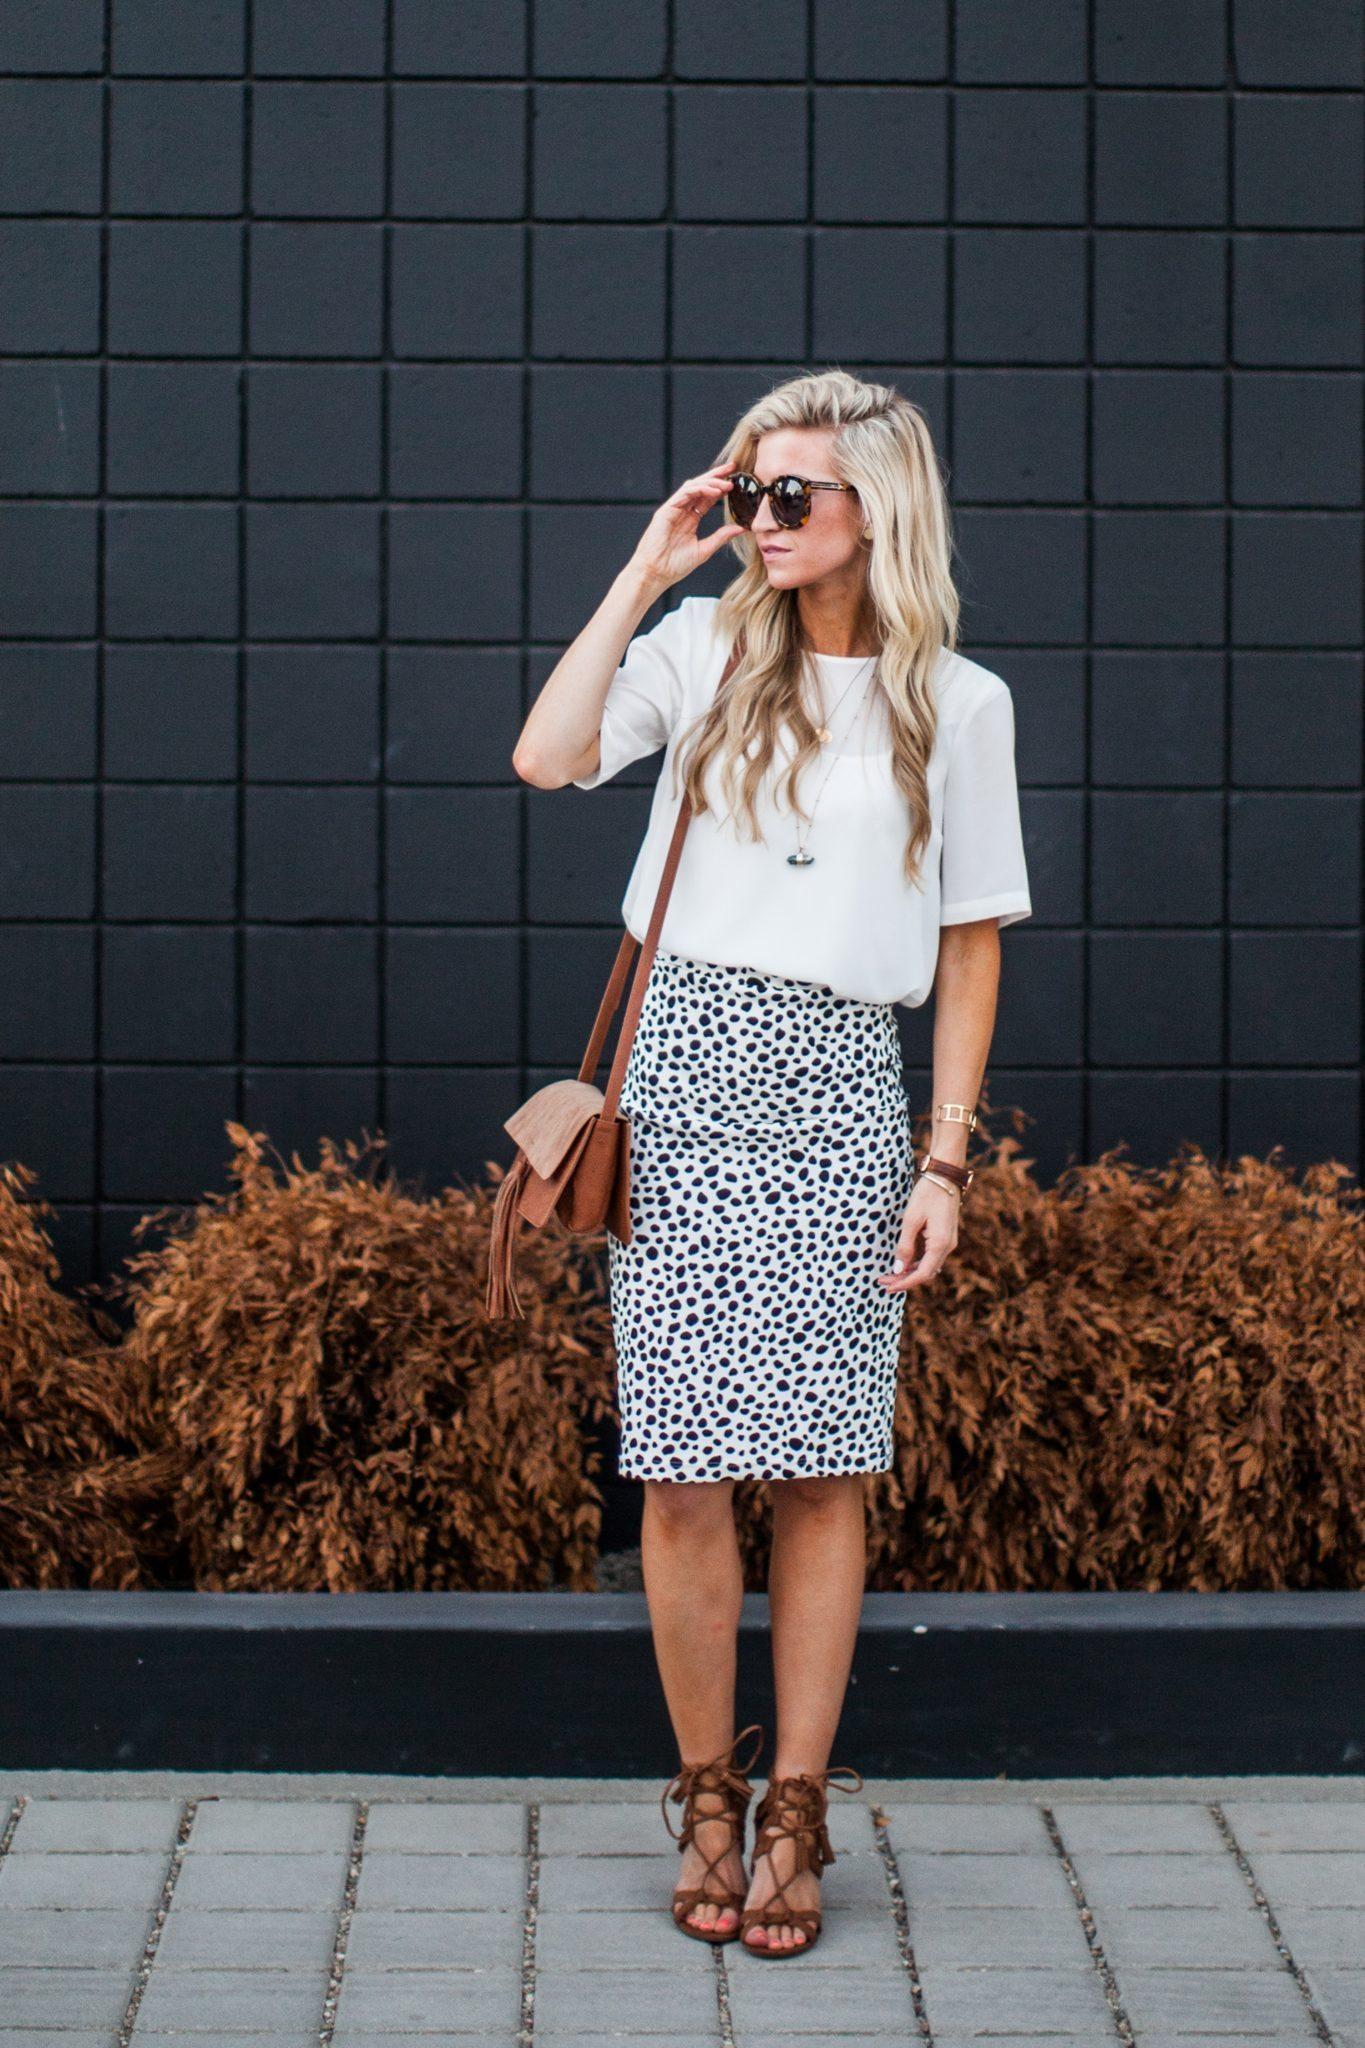 DALMATIAN PRINT PENCIL SKIRT TUTORIAL